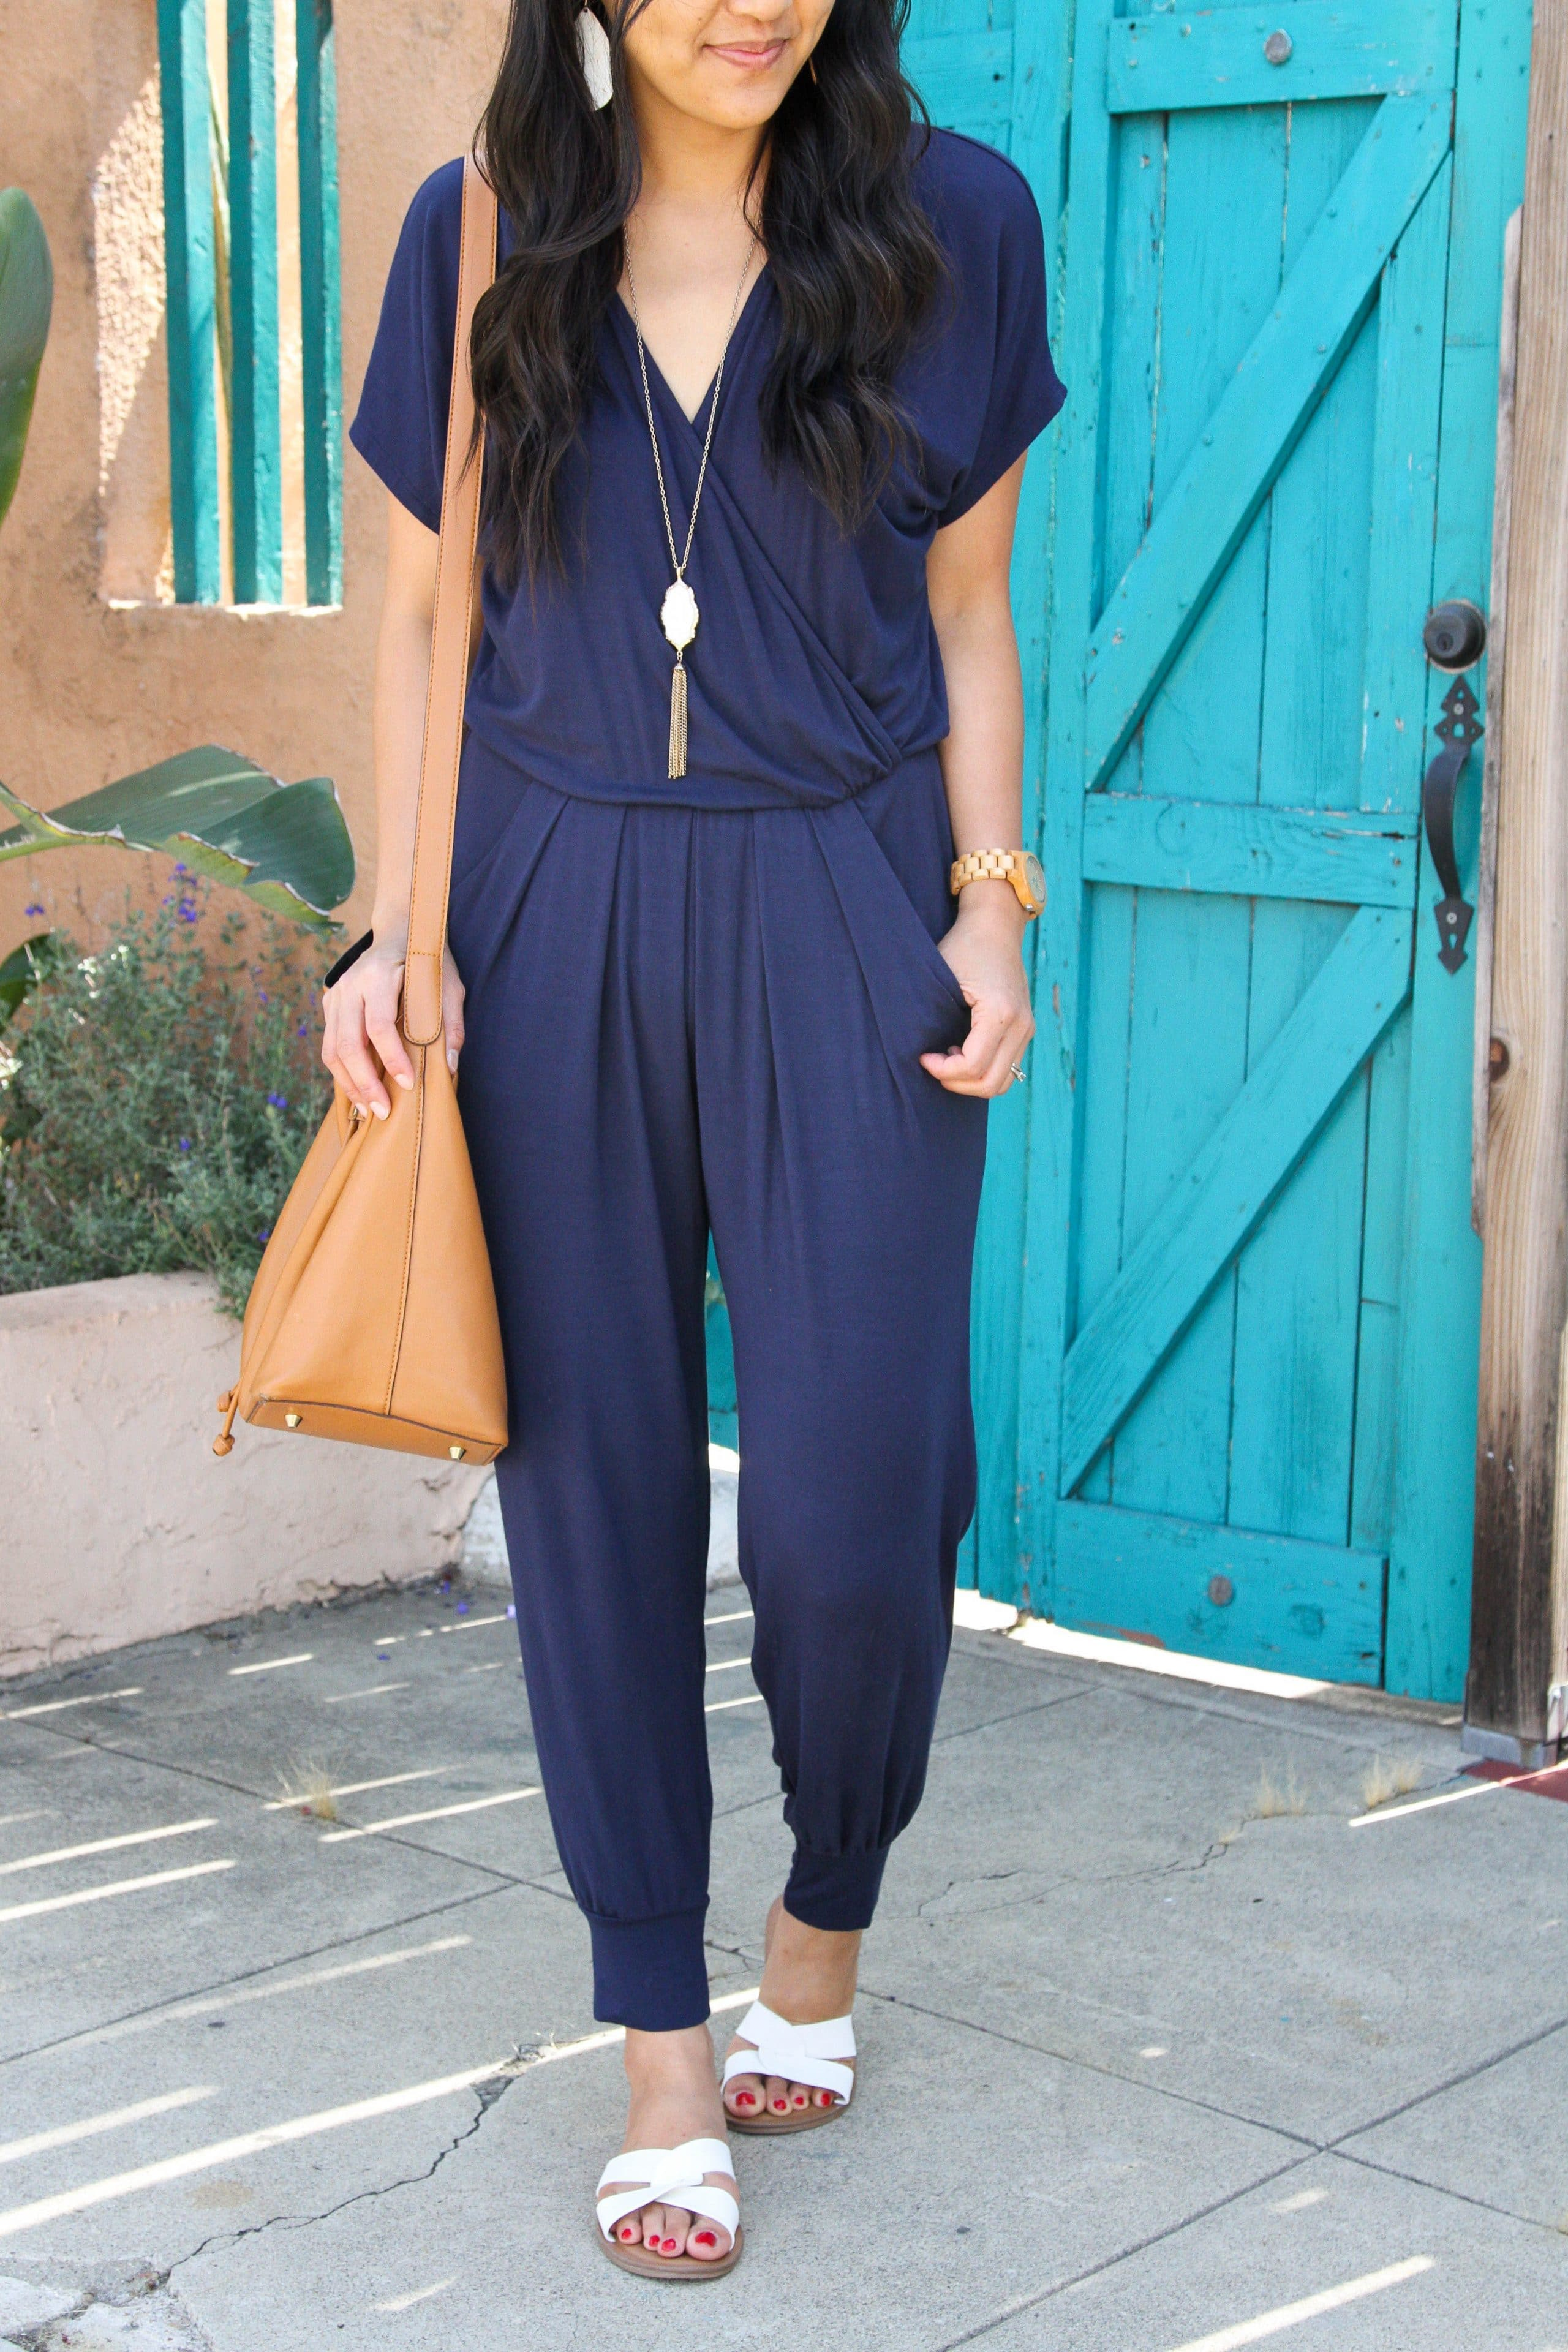 white sandals + cognac tote + navy jumpsuit